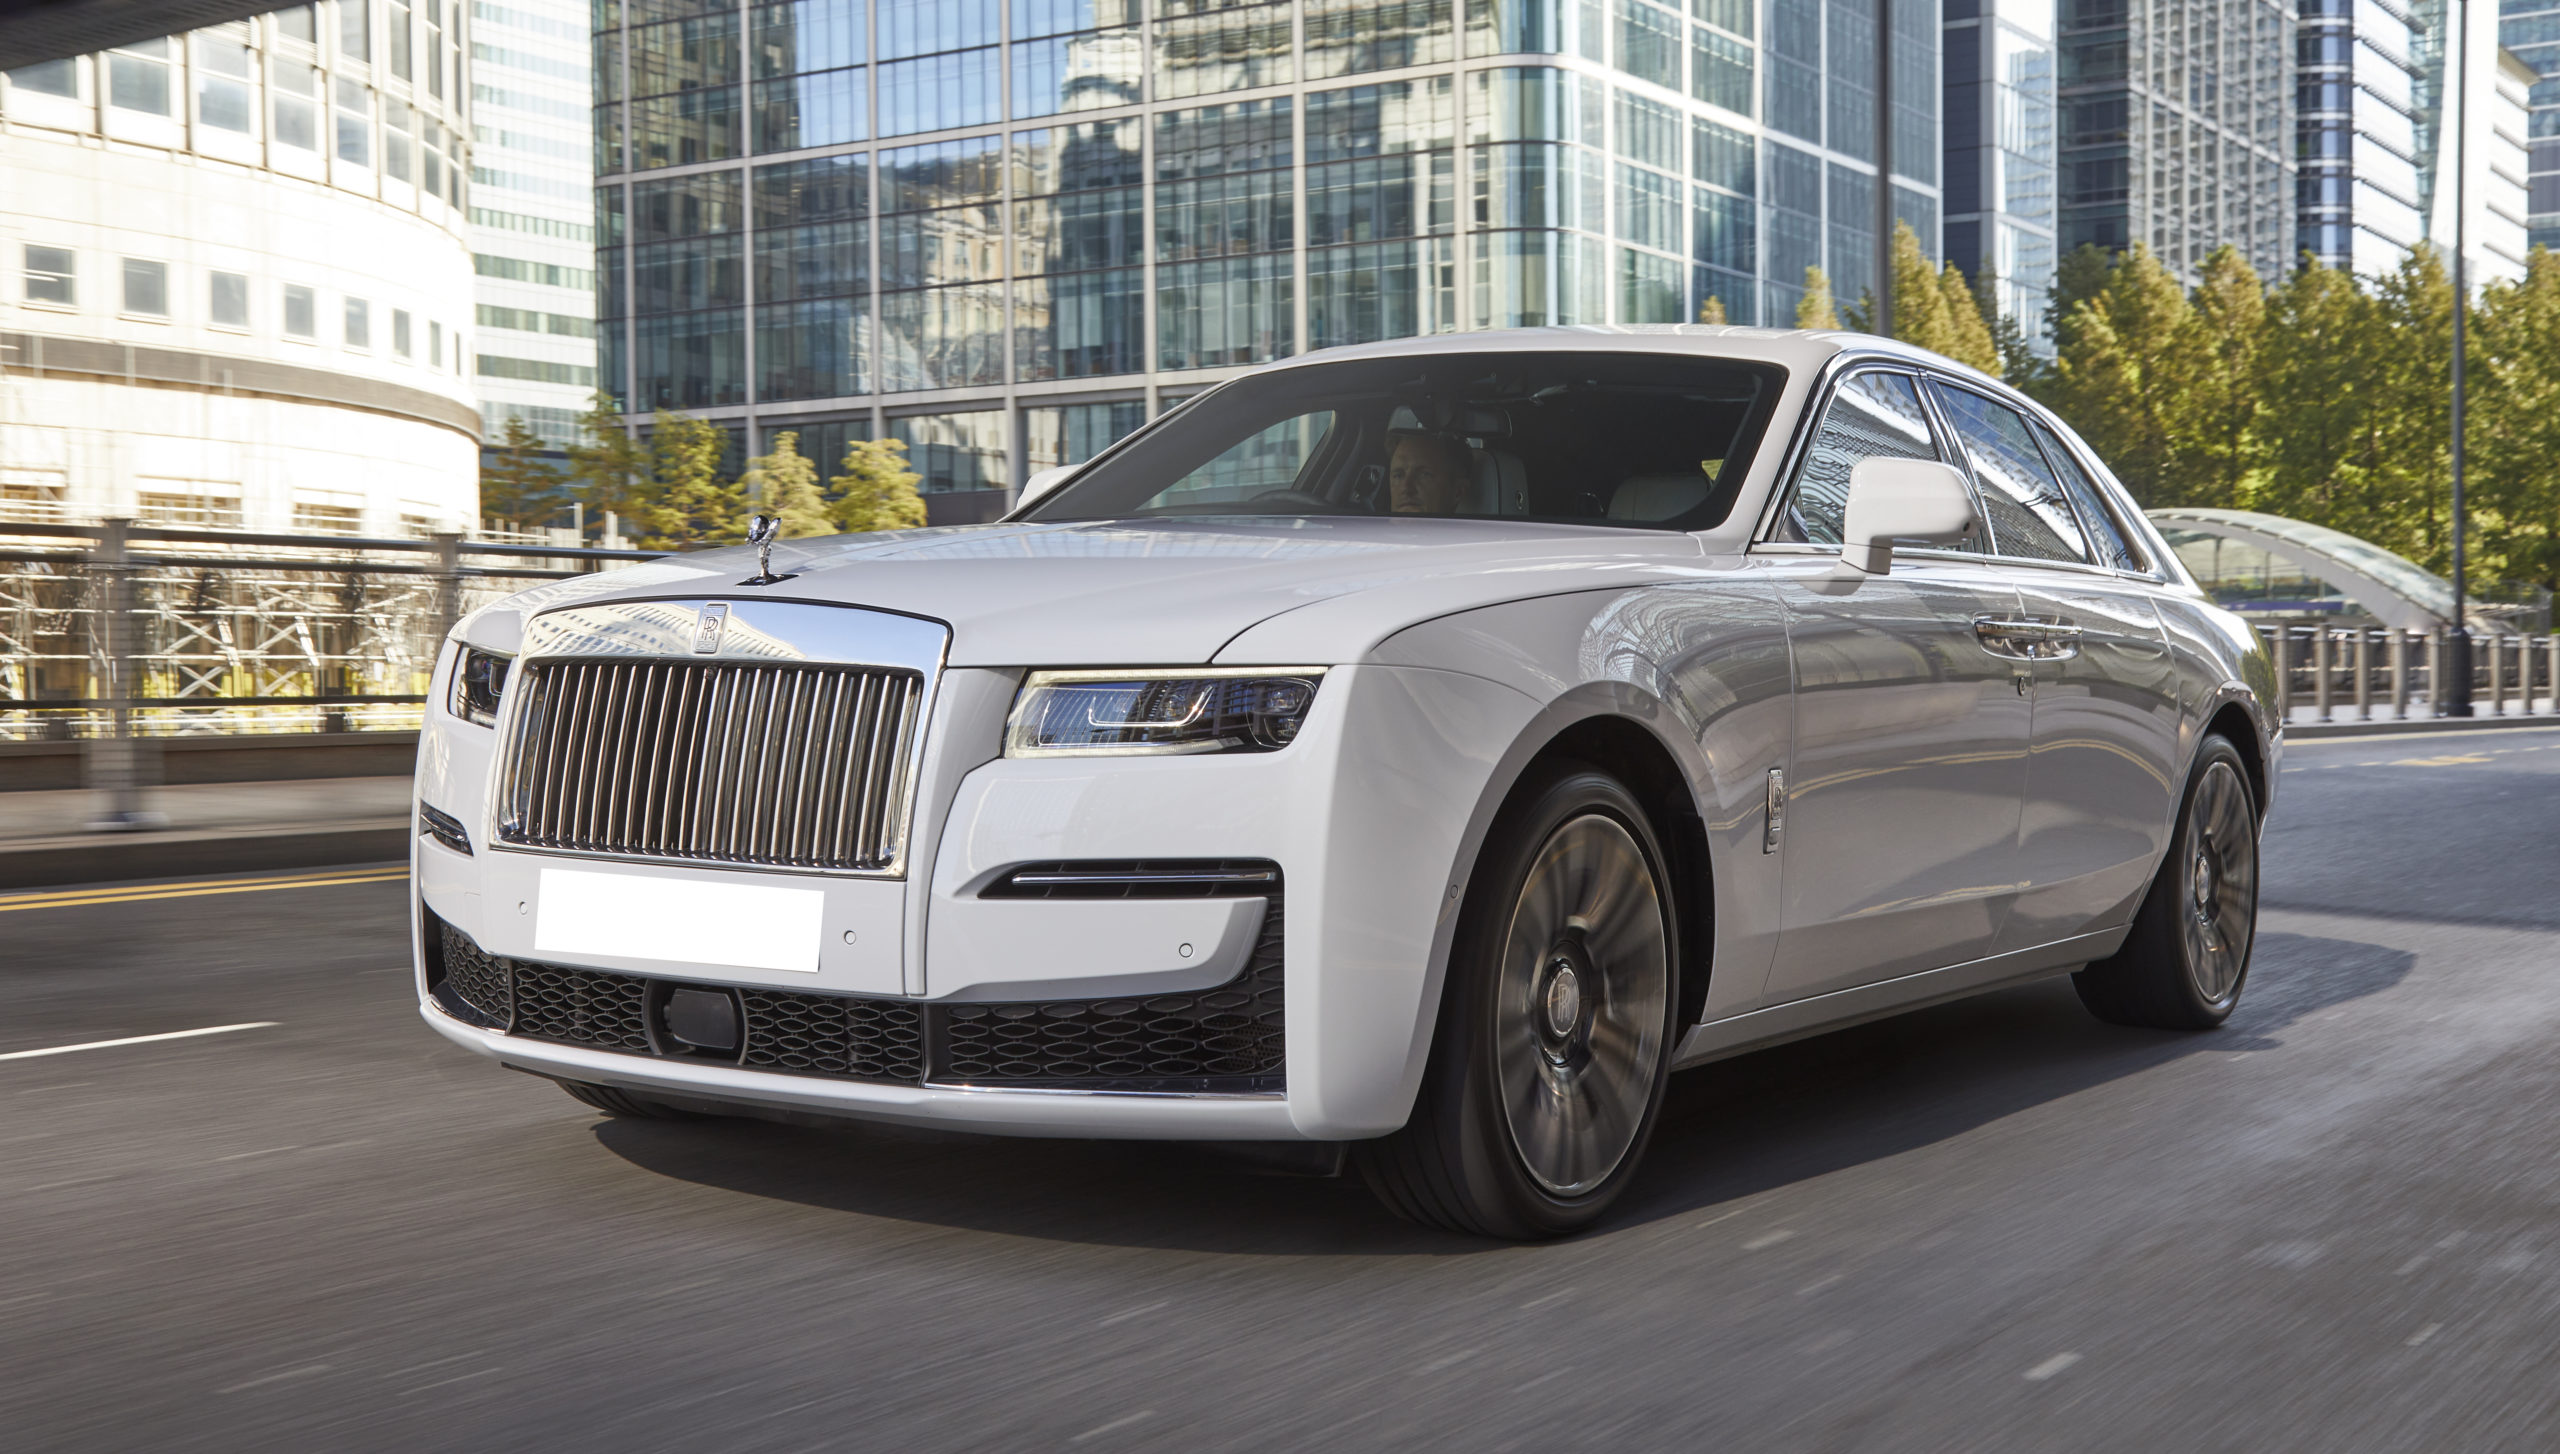 Rolls Royce Ghost Review 2021 Carwow